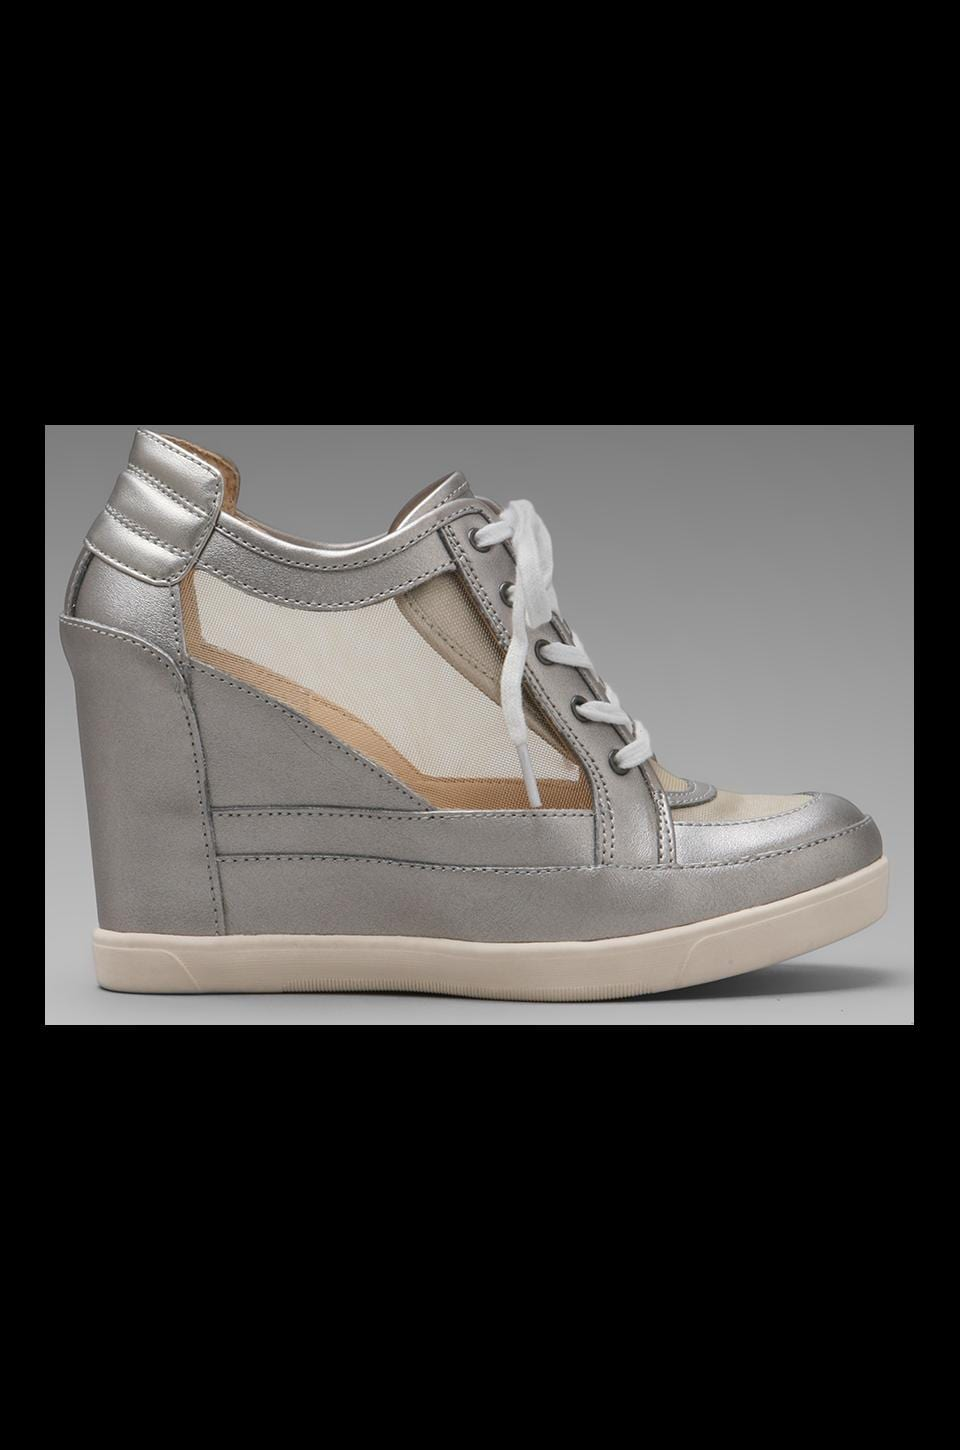 Luxury Rebel Carlton Mesh Wedge Sneaker in Cement